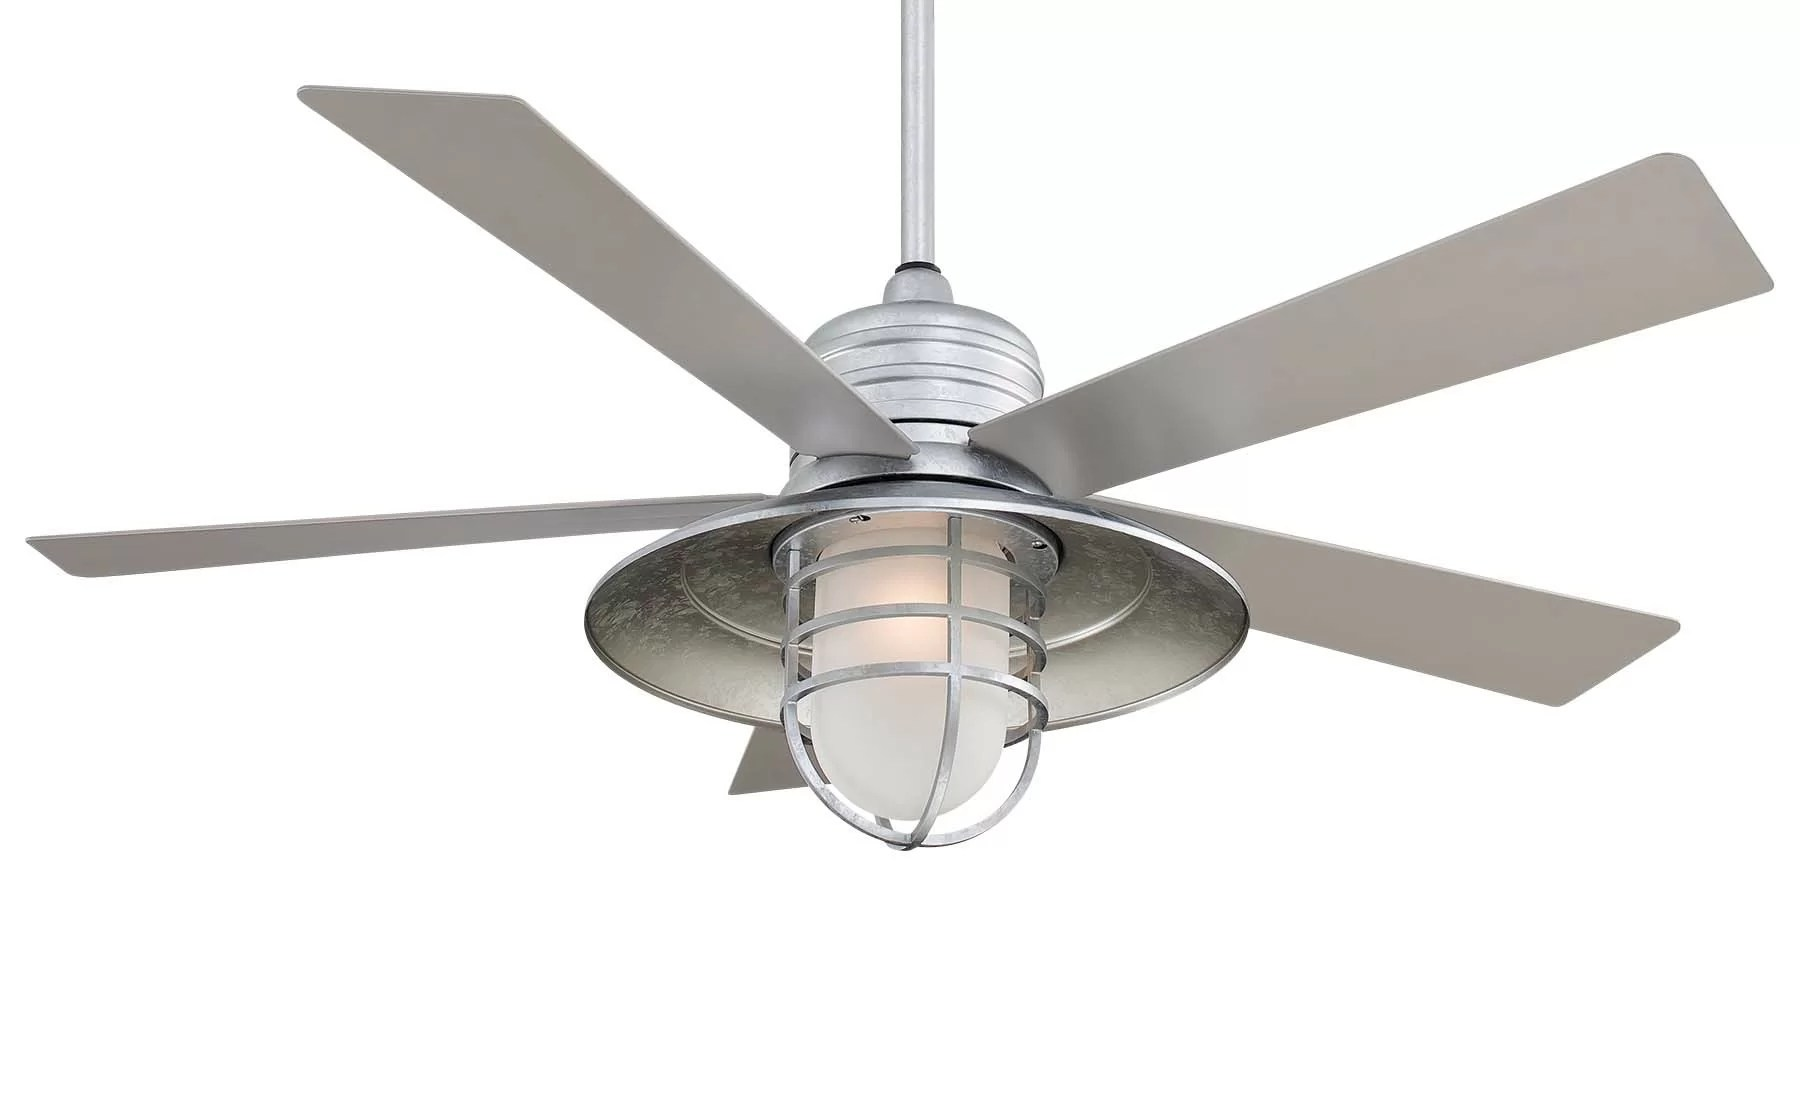 Minka Aire 54 Rainman 5 Blade Led Standard Ceiling Fan With Wall Control And Light Kit Included Reviews Wayfair